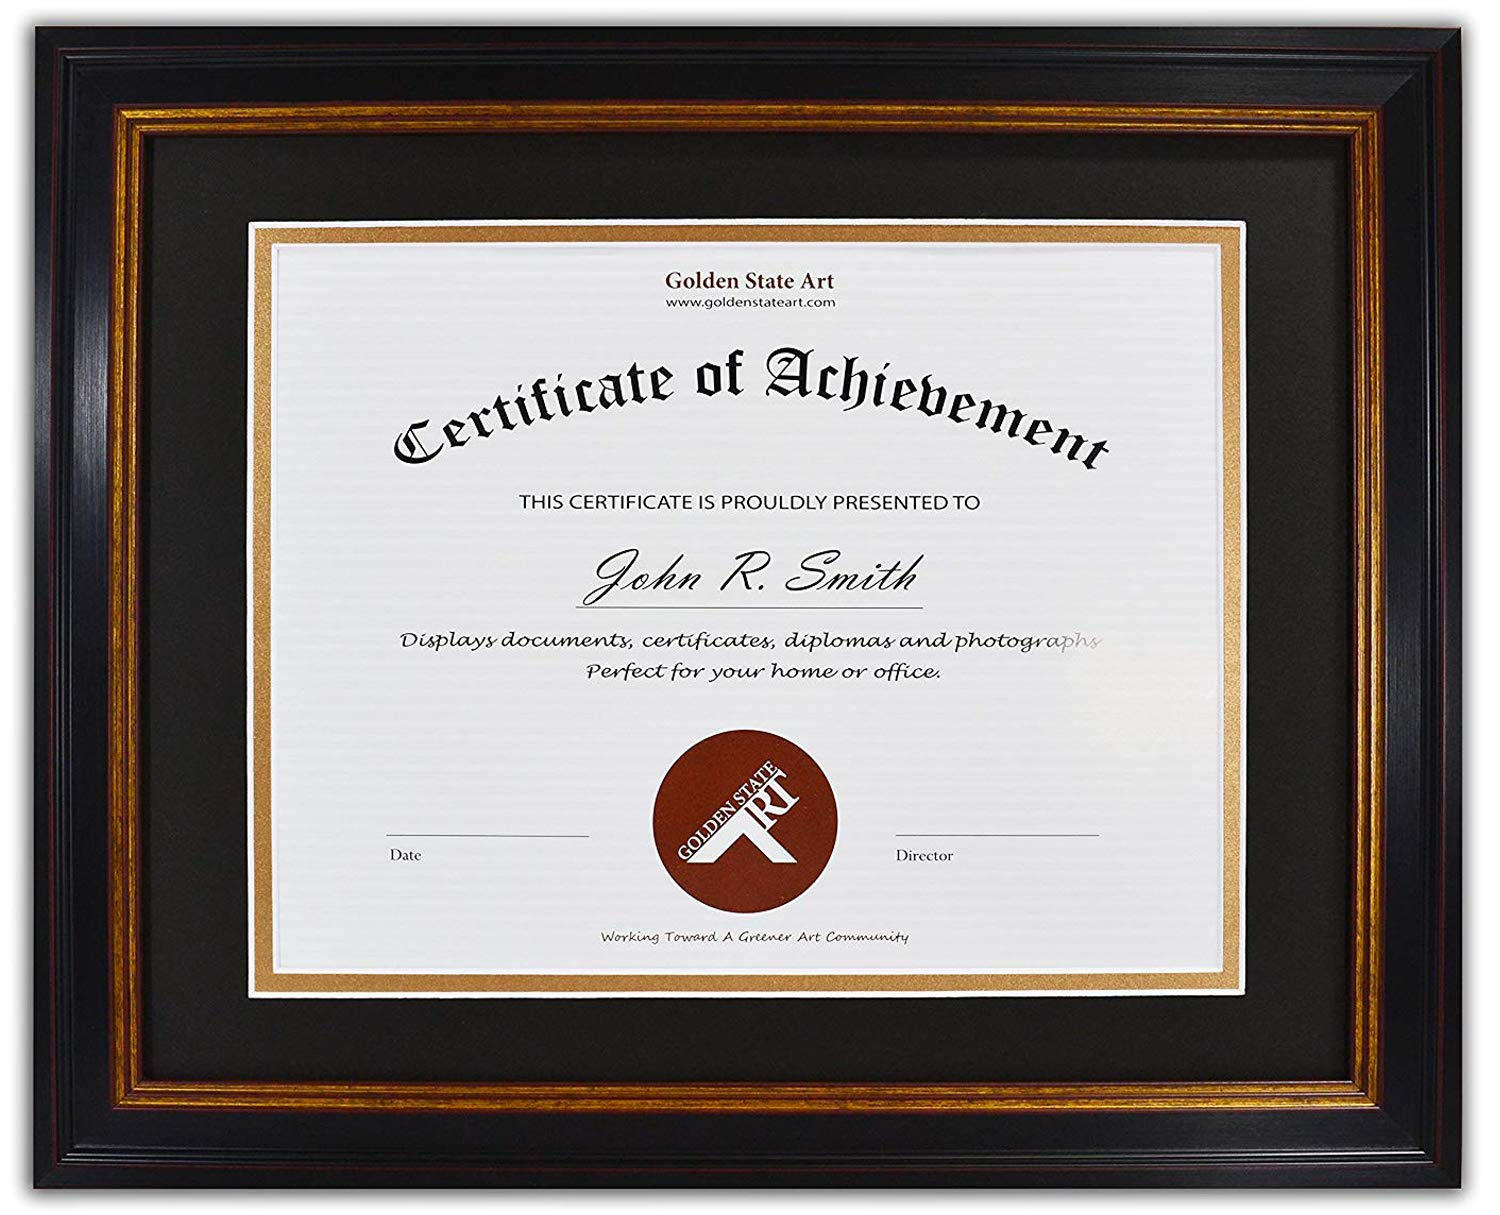 Golden State Art, 11x14 Frame for 8.5x11 Diploma/Certificate, Black Gold & Burgundy Color. Includes Black Over Gold Double Mat and Real Glass by Golden State Art